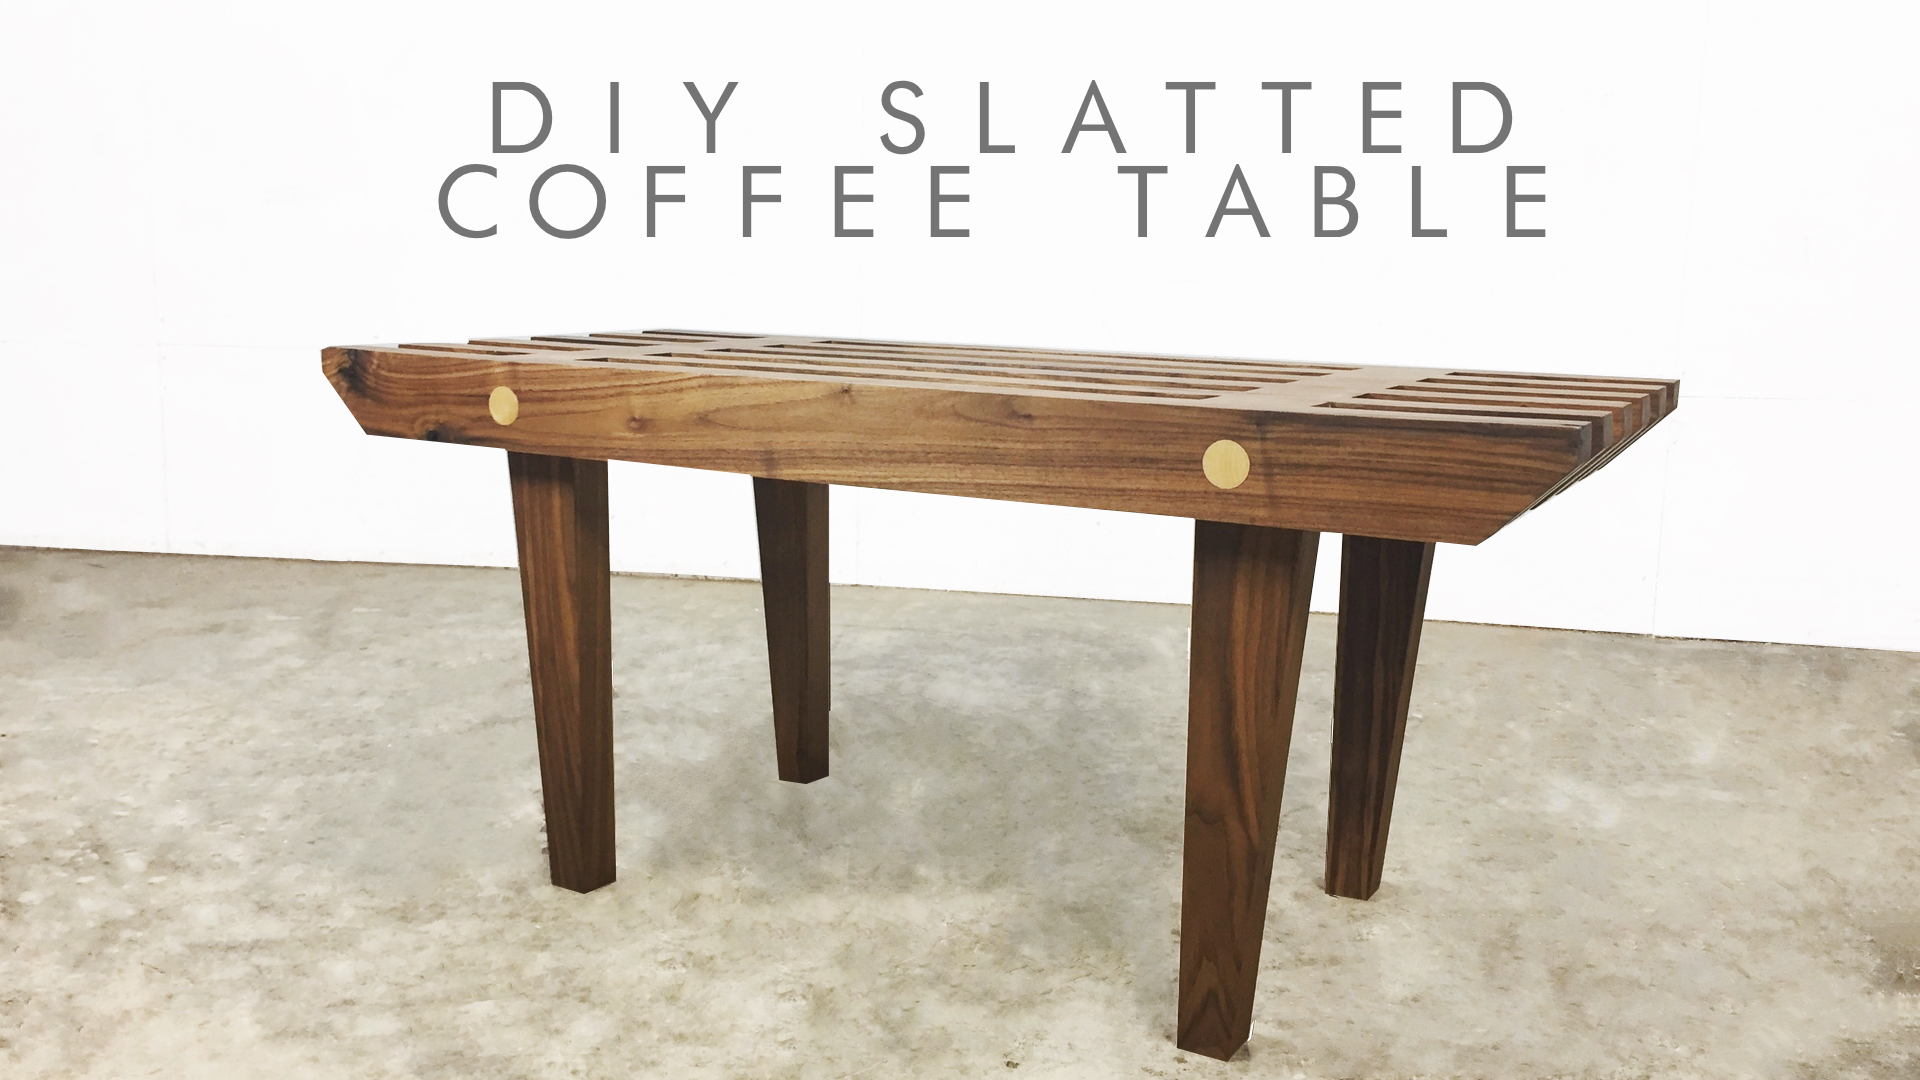 Slatted Coffee Table.jpg